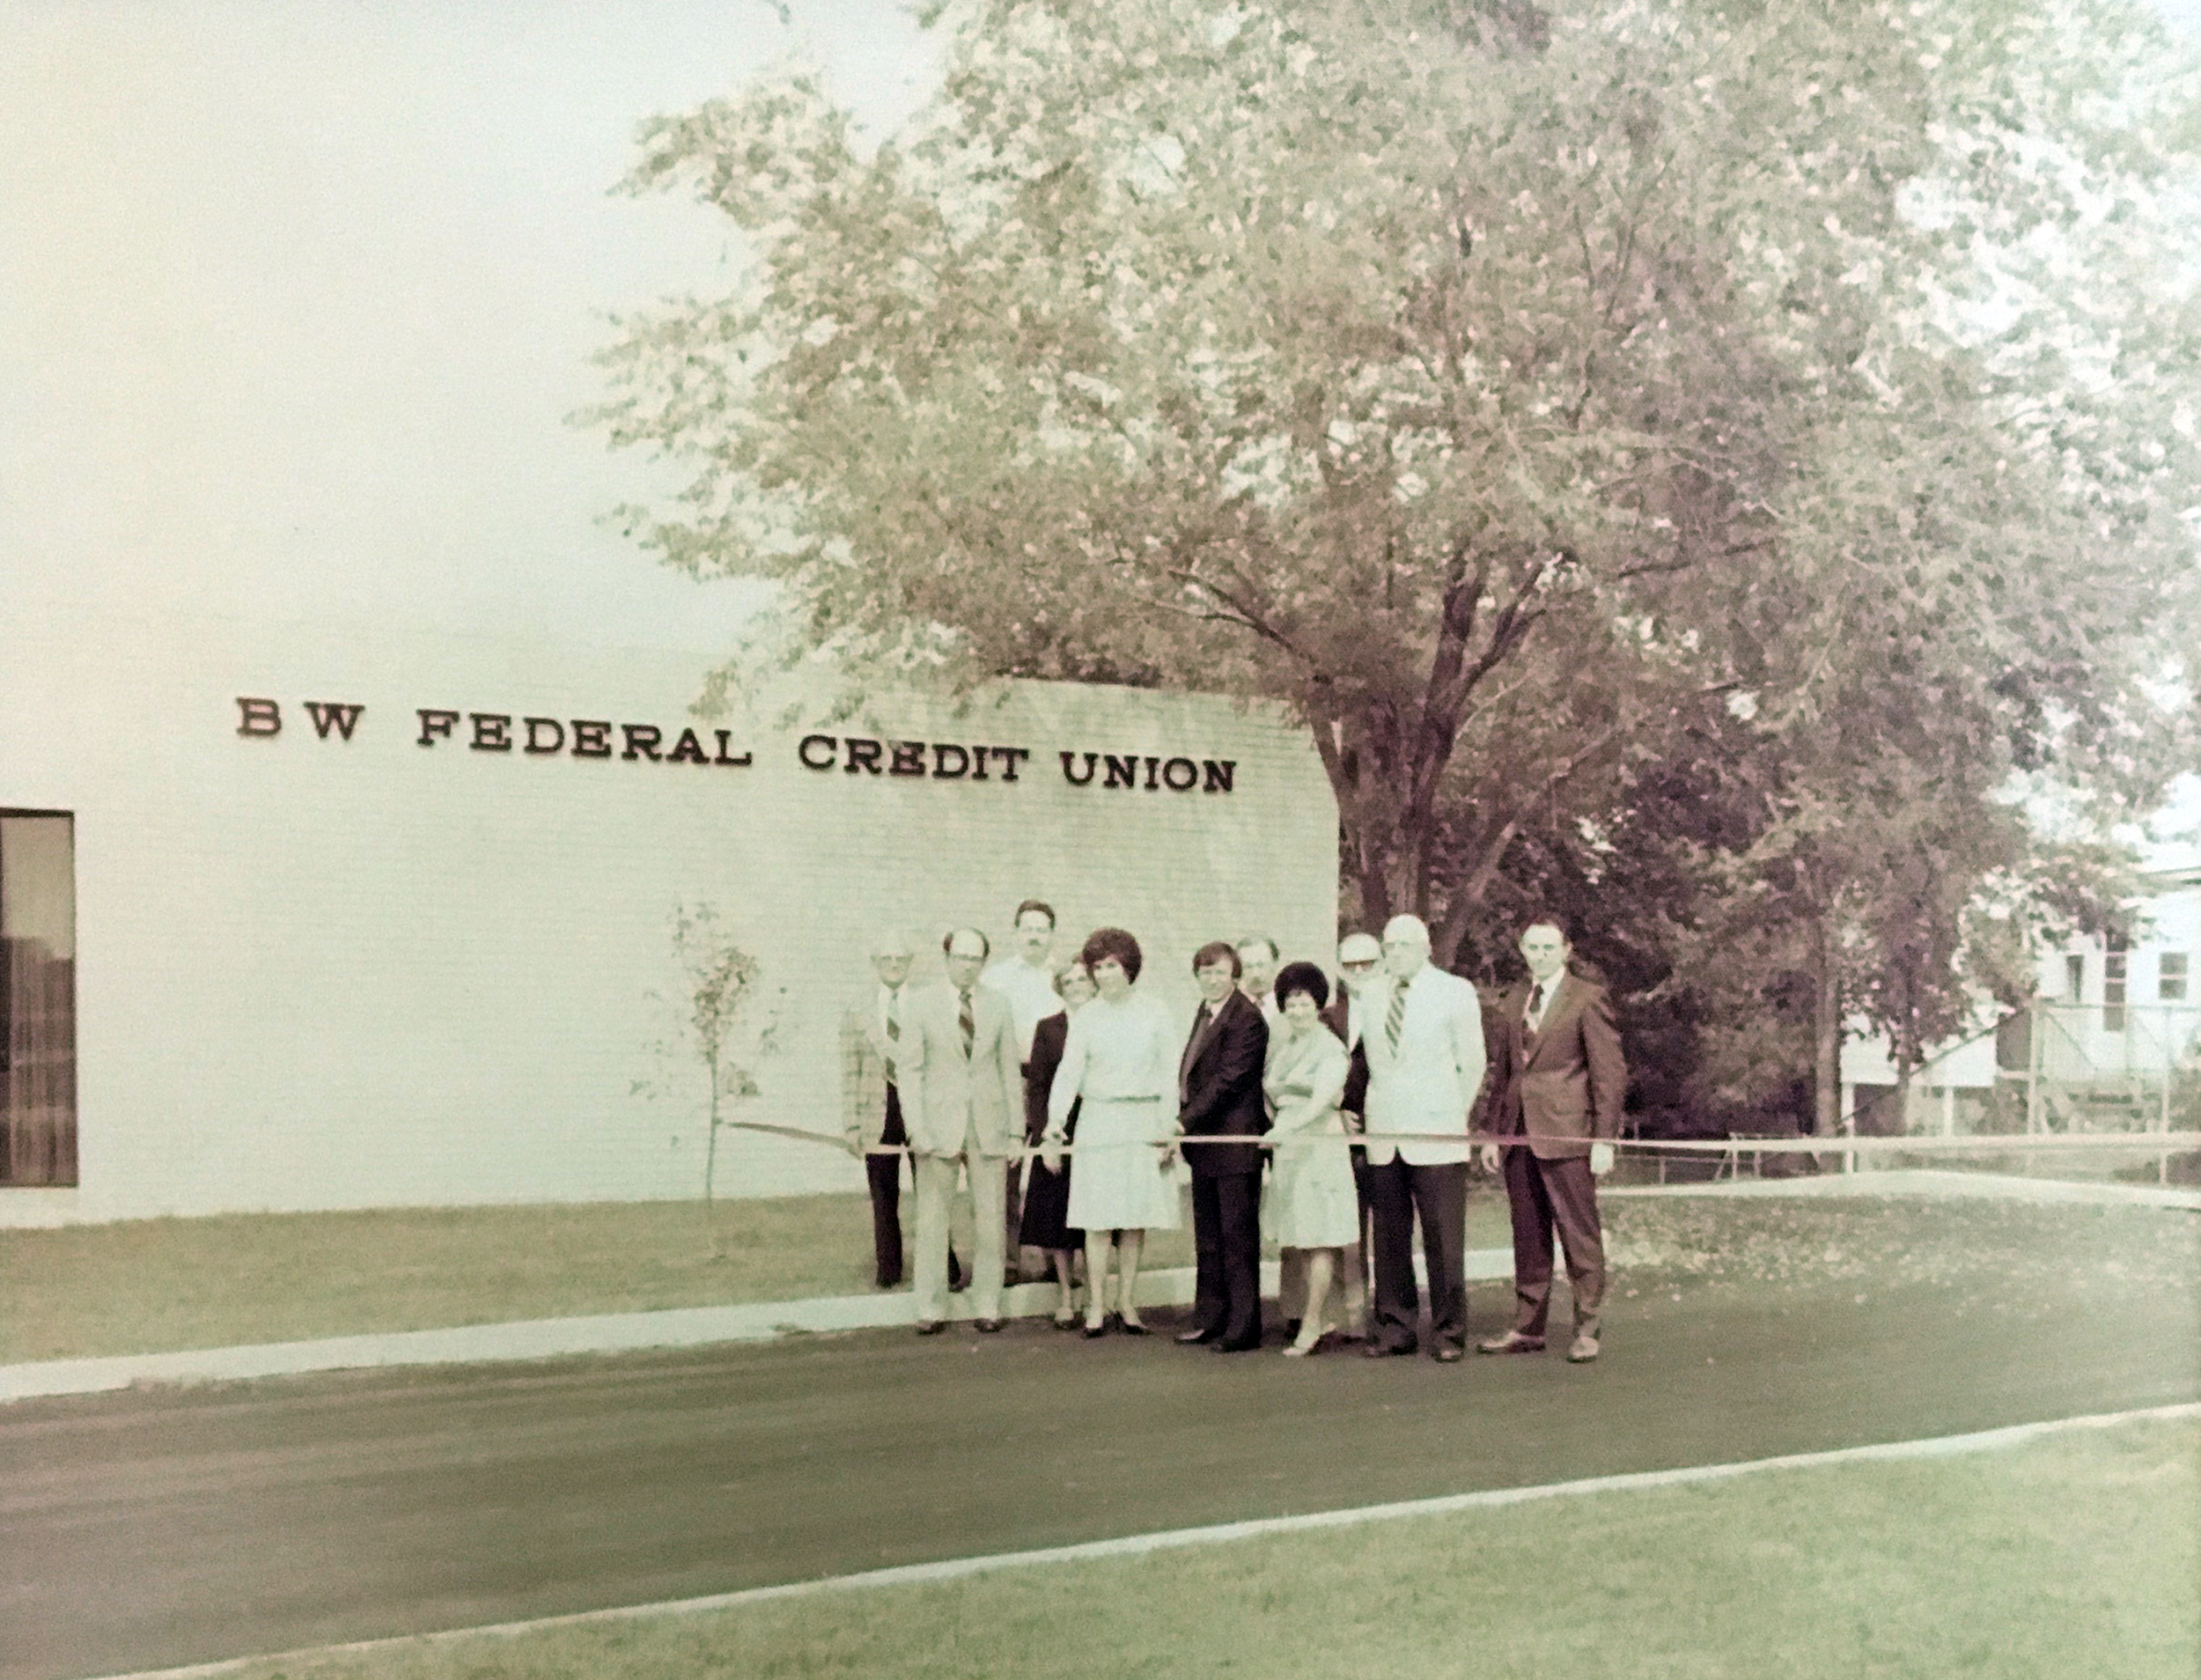 Image: Old photo of a ribbon cutting at BWFCU